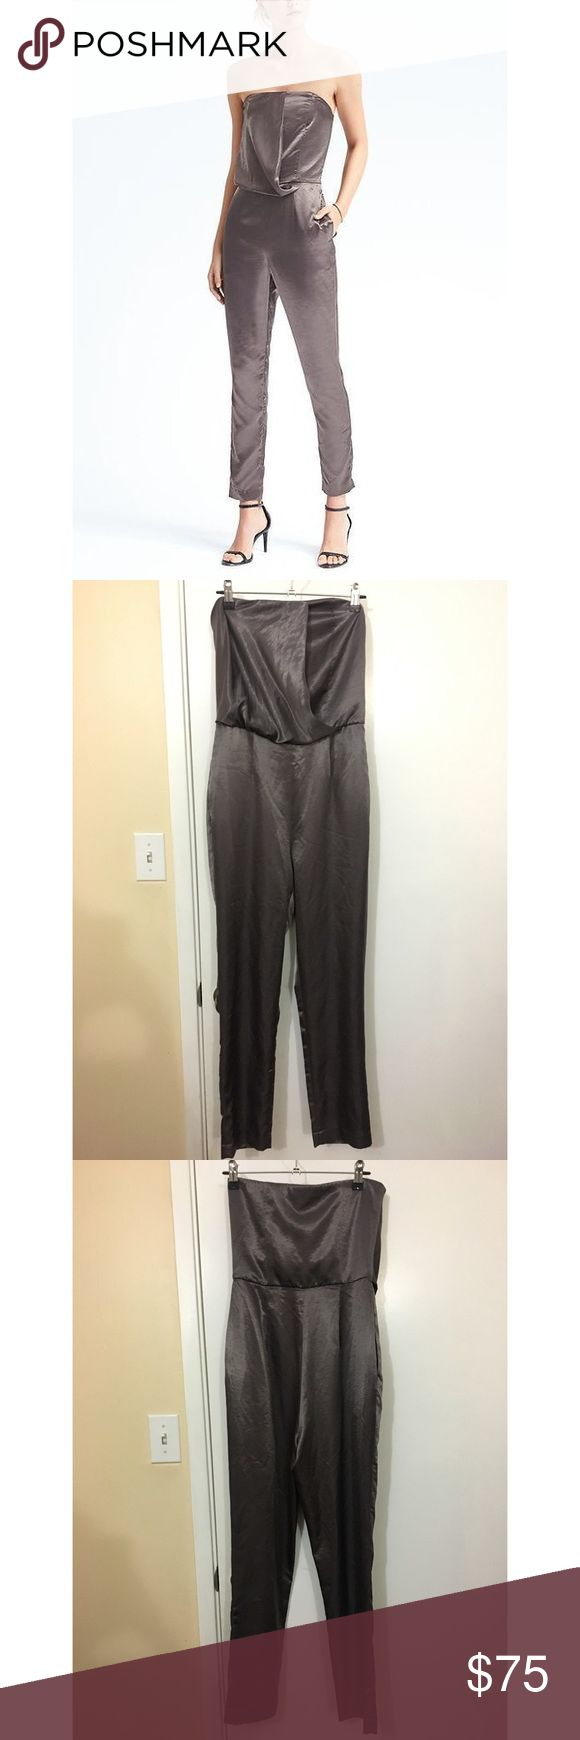 """Banana Republic Heritage Strapless Silver Jumpsuit Banana Republic Heritage line. Silver metallic. Strapless jumpsuit with pockets. Size zero (0).  100% polyester.  Never worn. Bought it to wear to Vegas but decided on something else. I'm 5'2"""" and it is long on my legs. Banana Republic Dresses"""